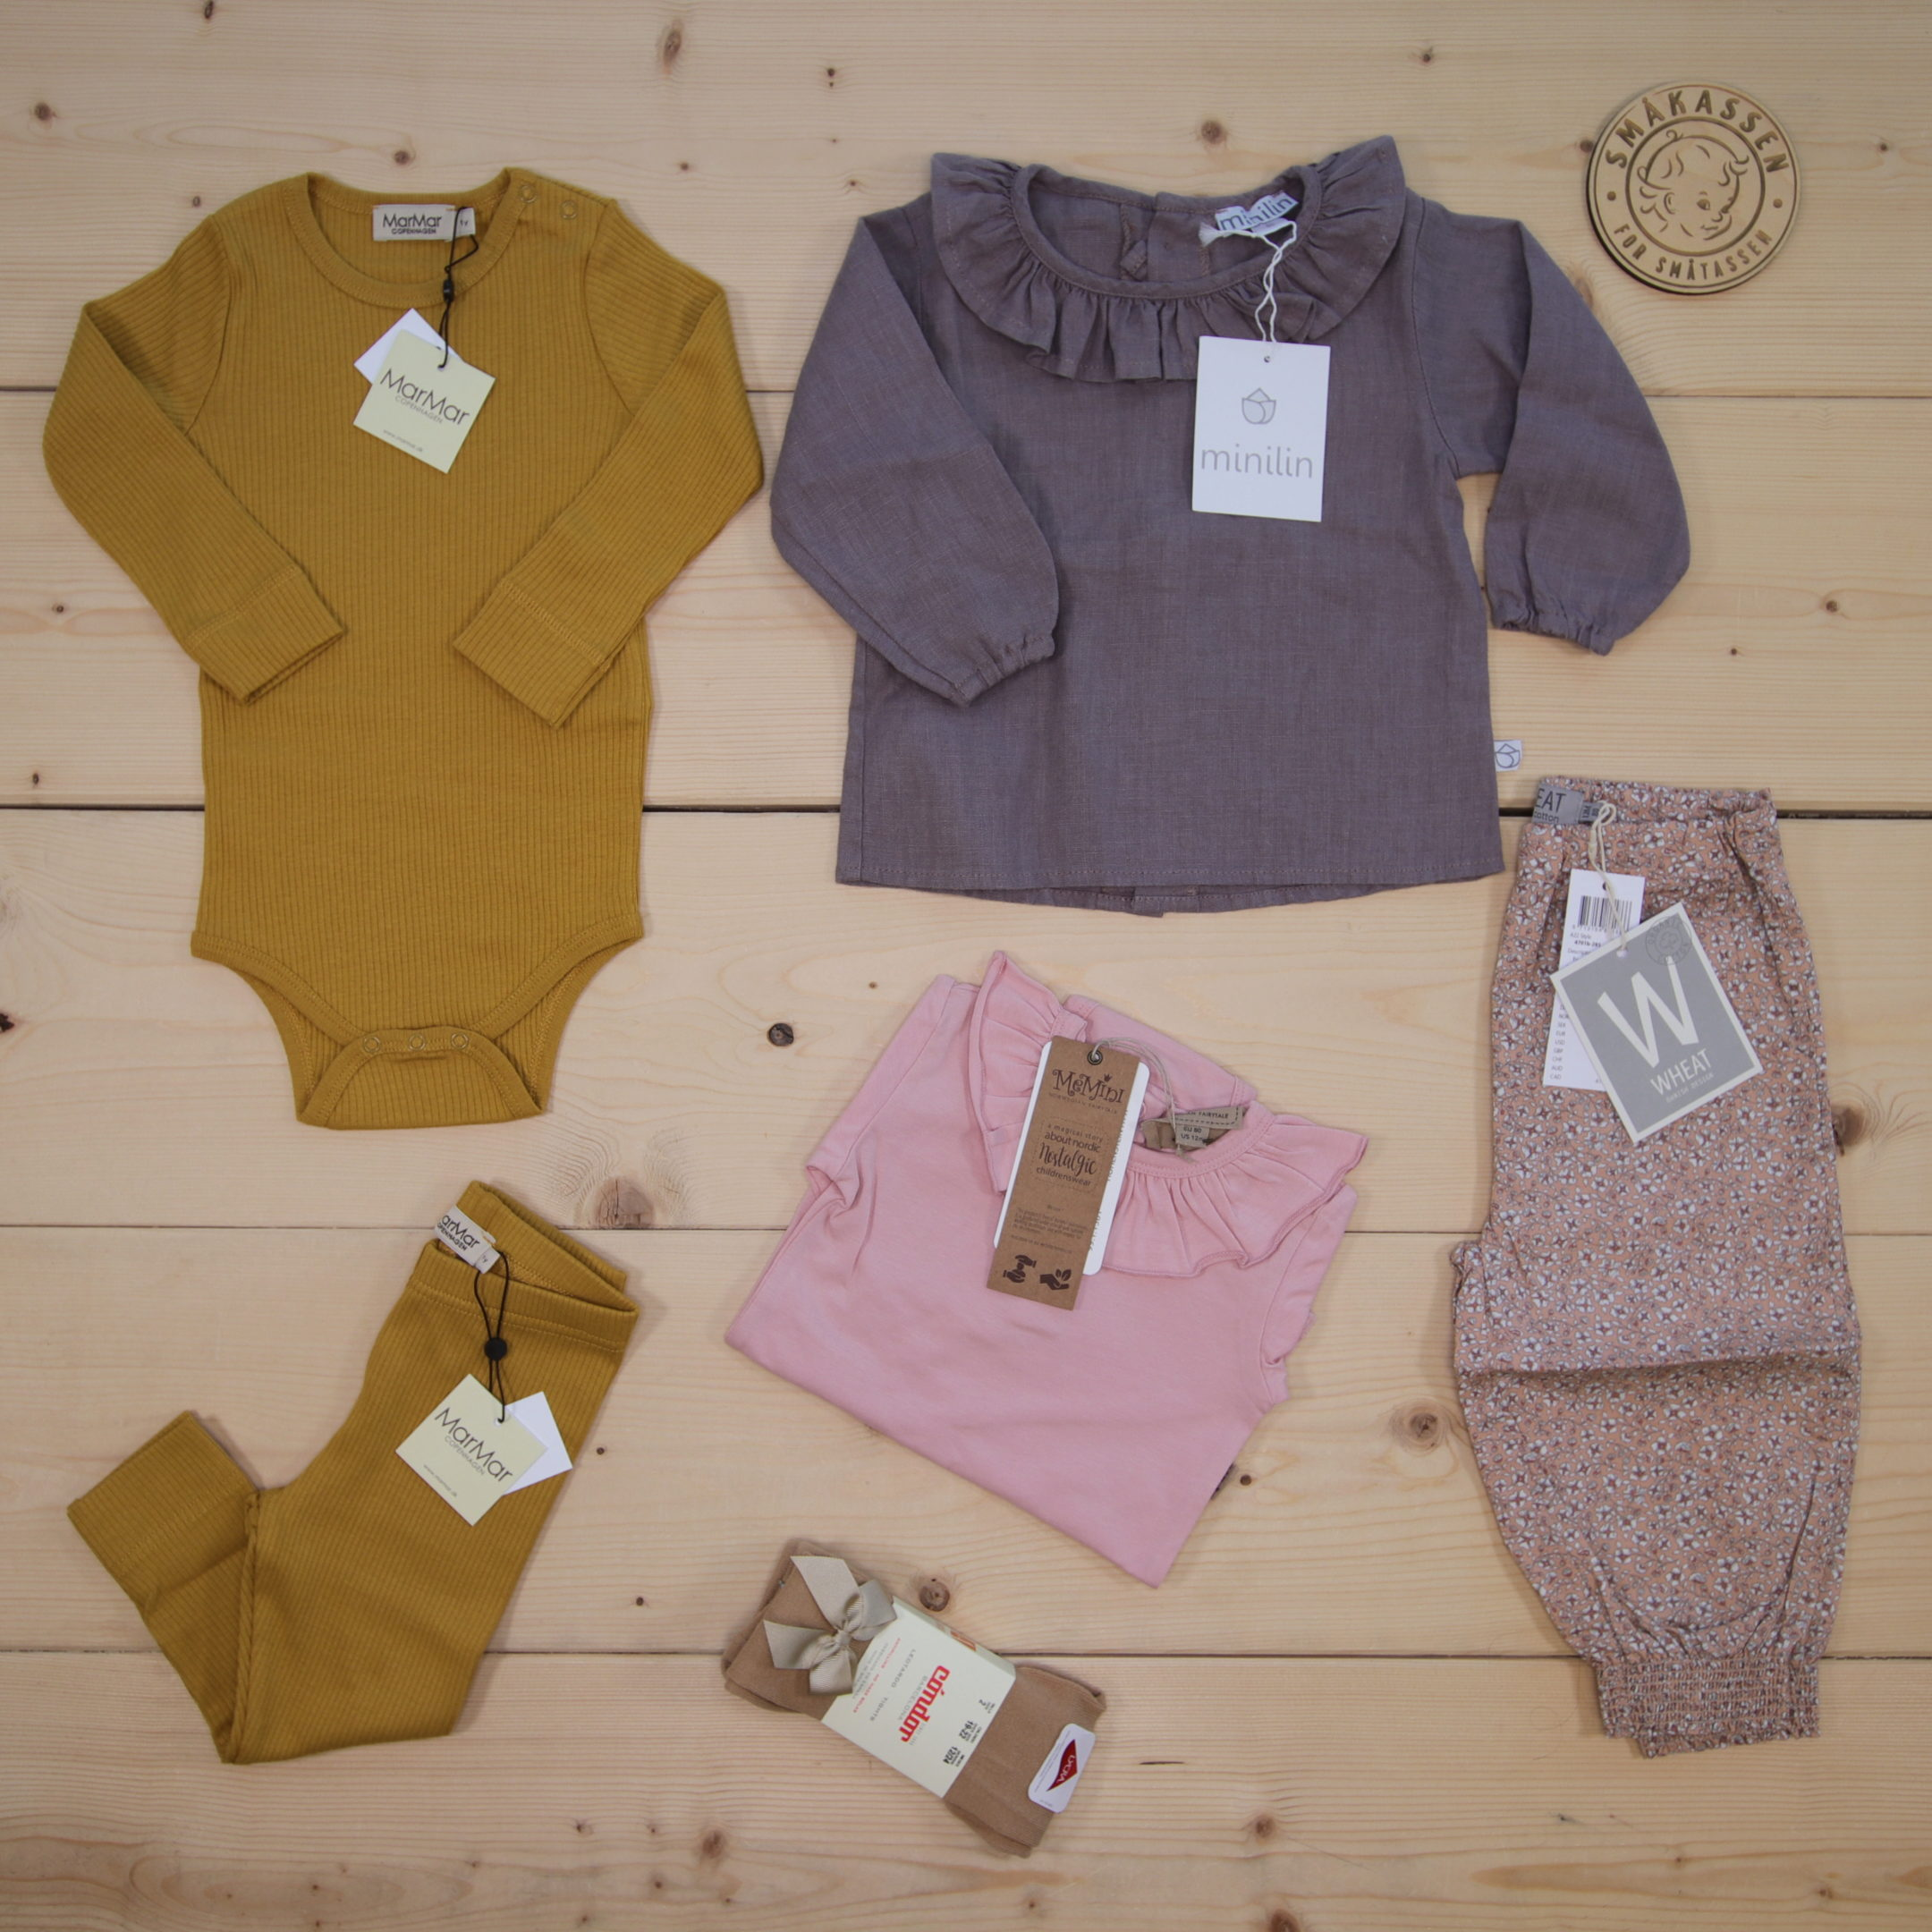 This is a 125 GBP* Småkassen that we prepared for a girl  in the styles cute and cool in size 80